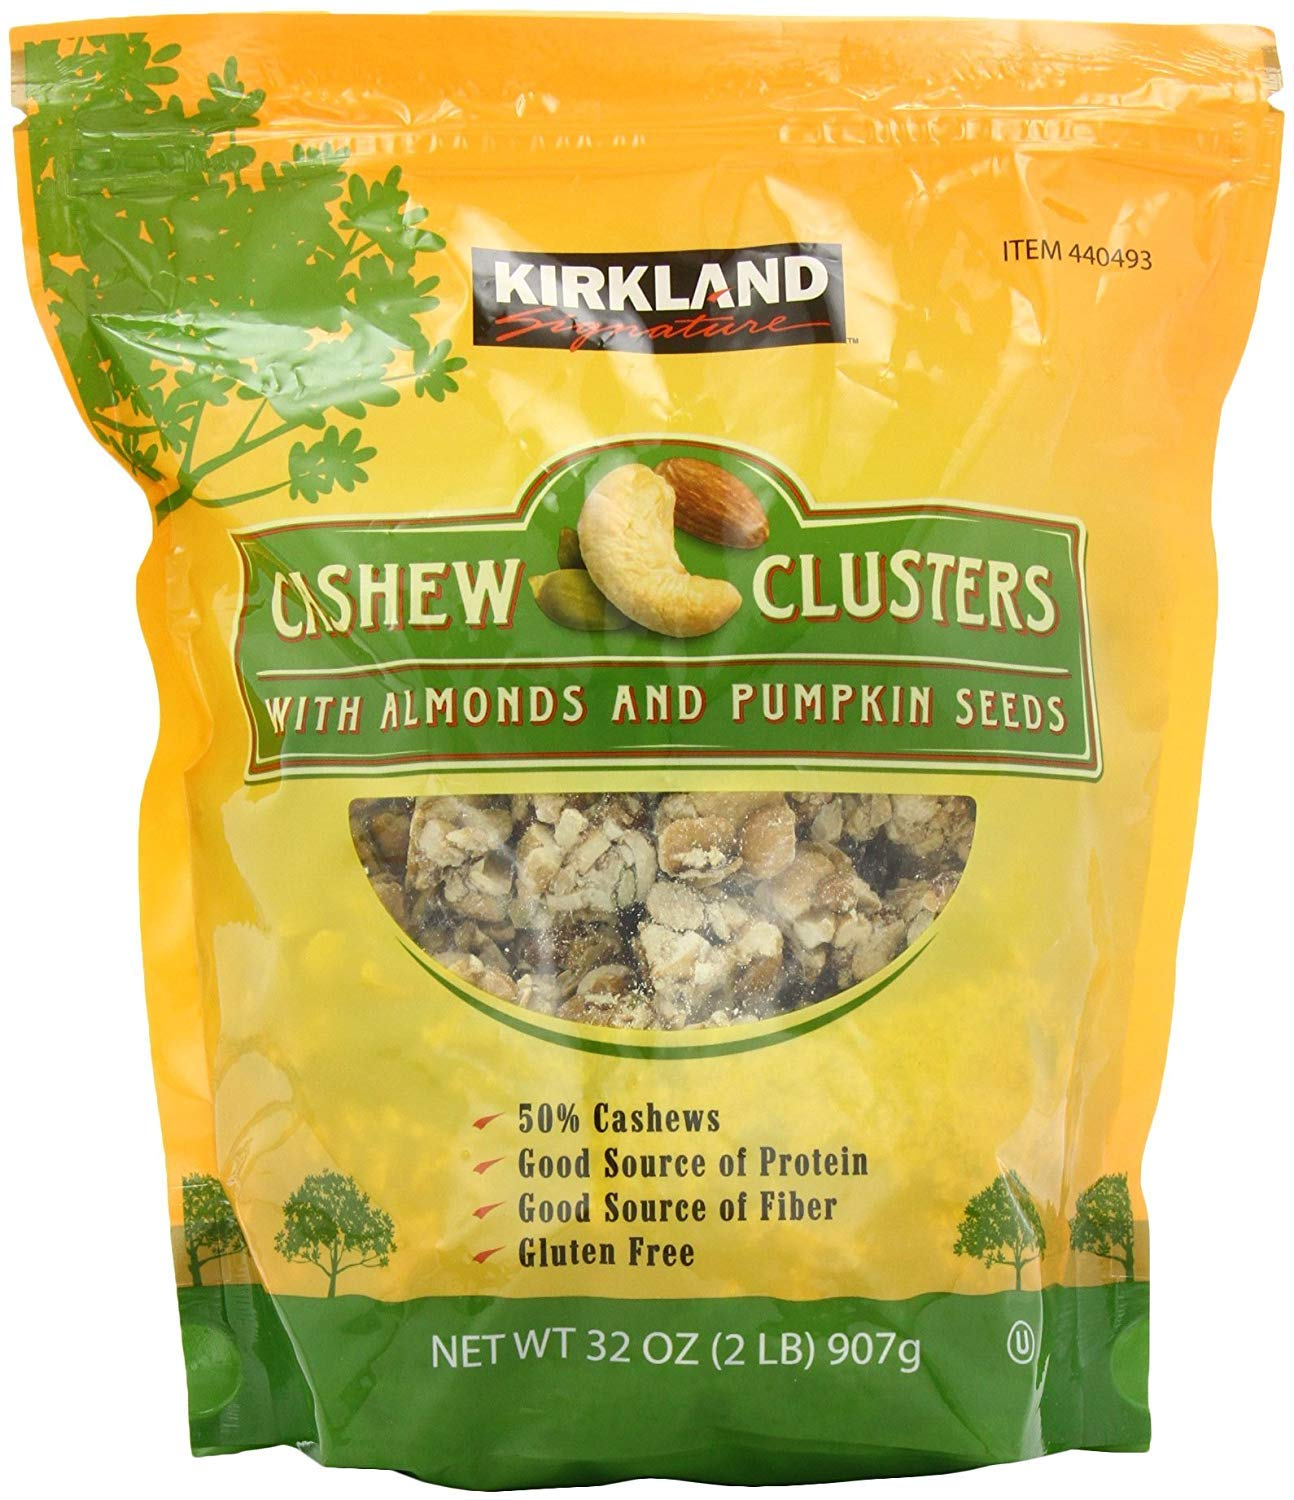 Signature's Cashew Cluster With Almonds & Pumpkin Seeds, 32 Oz (440493)